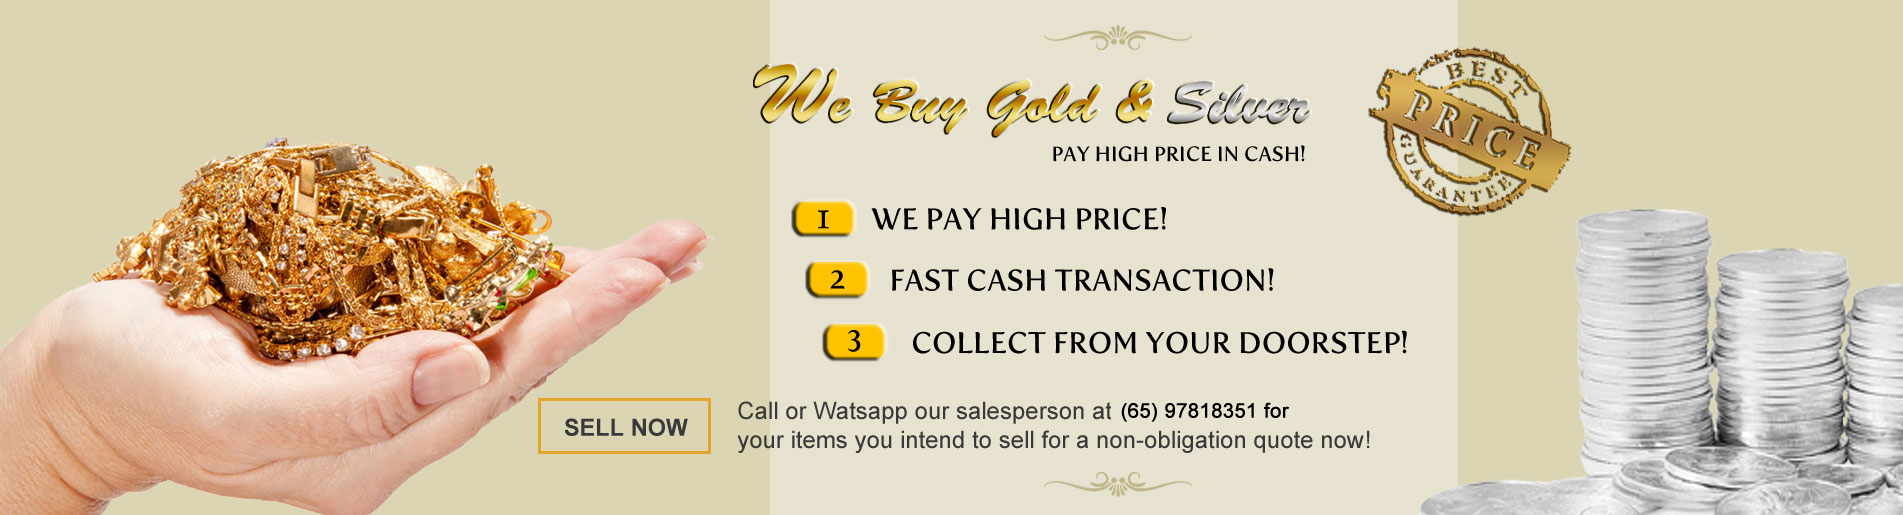 Sell Gold - Sell Silver - Sell Gold Jewellery - Sell Silver Bars, Sell Silver Coins